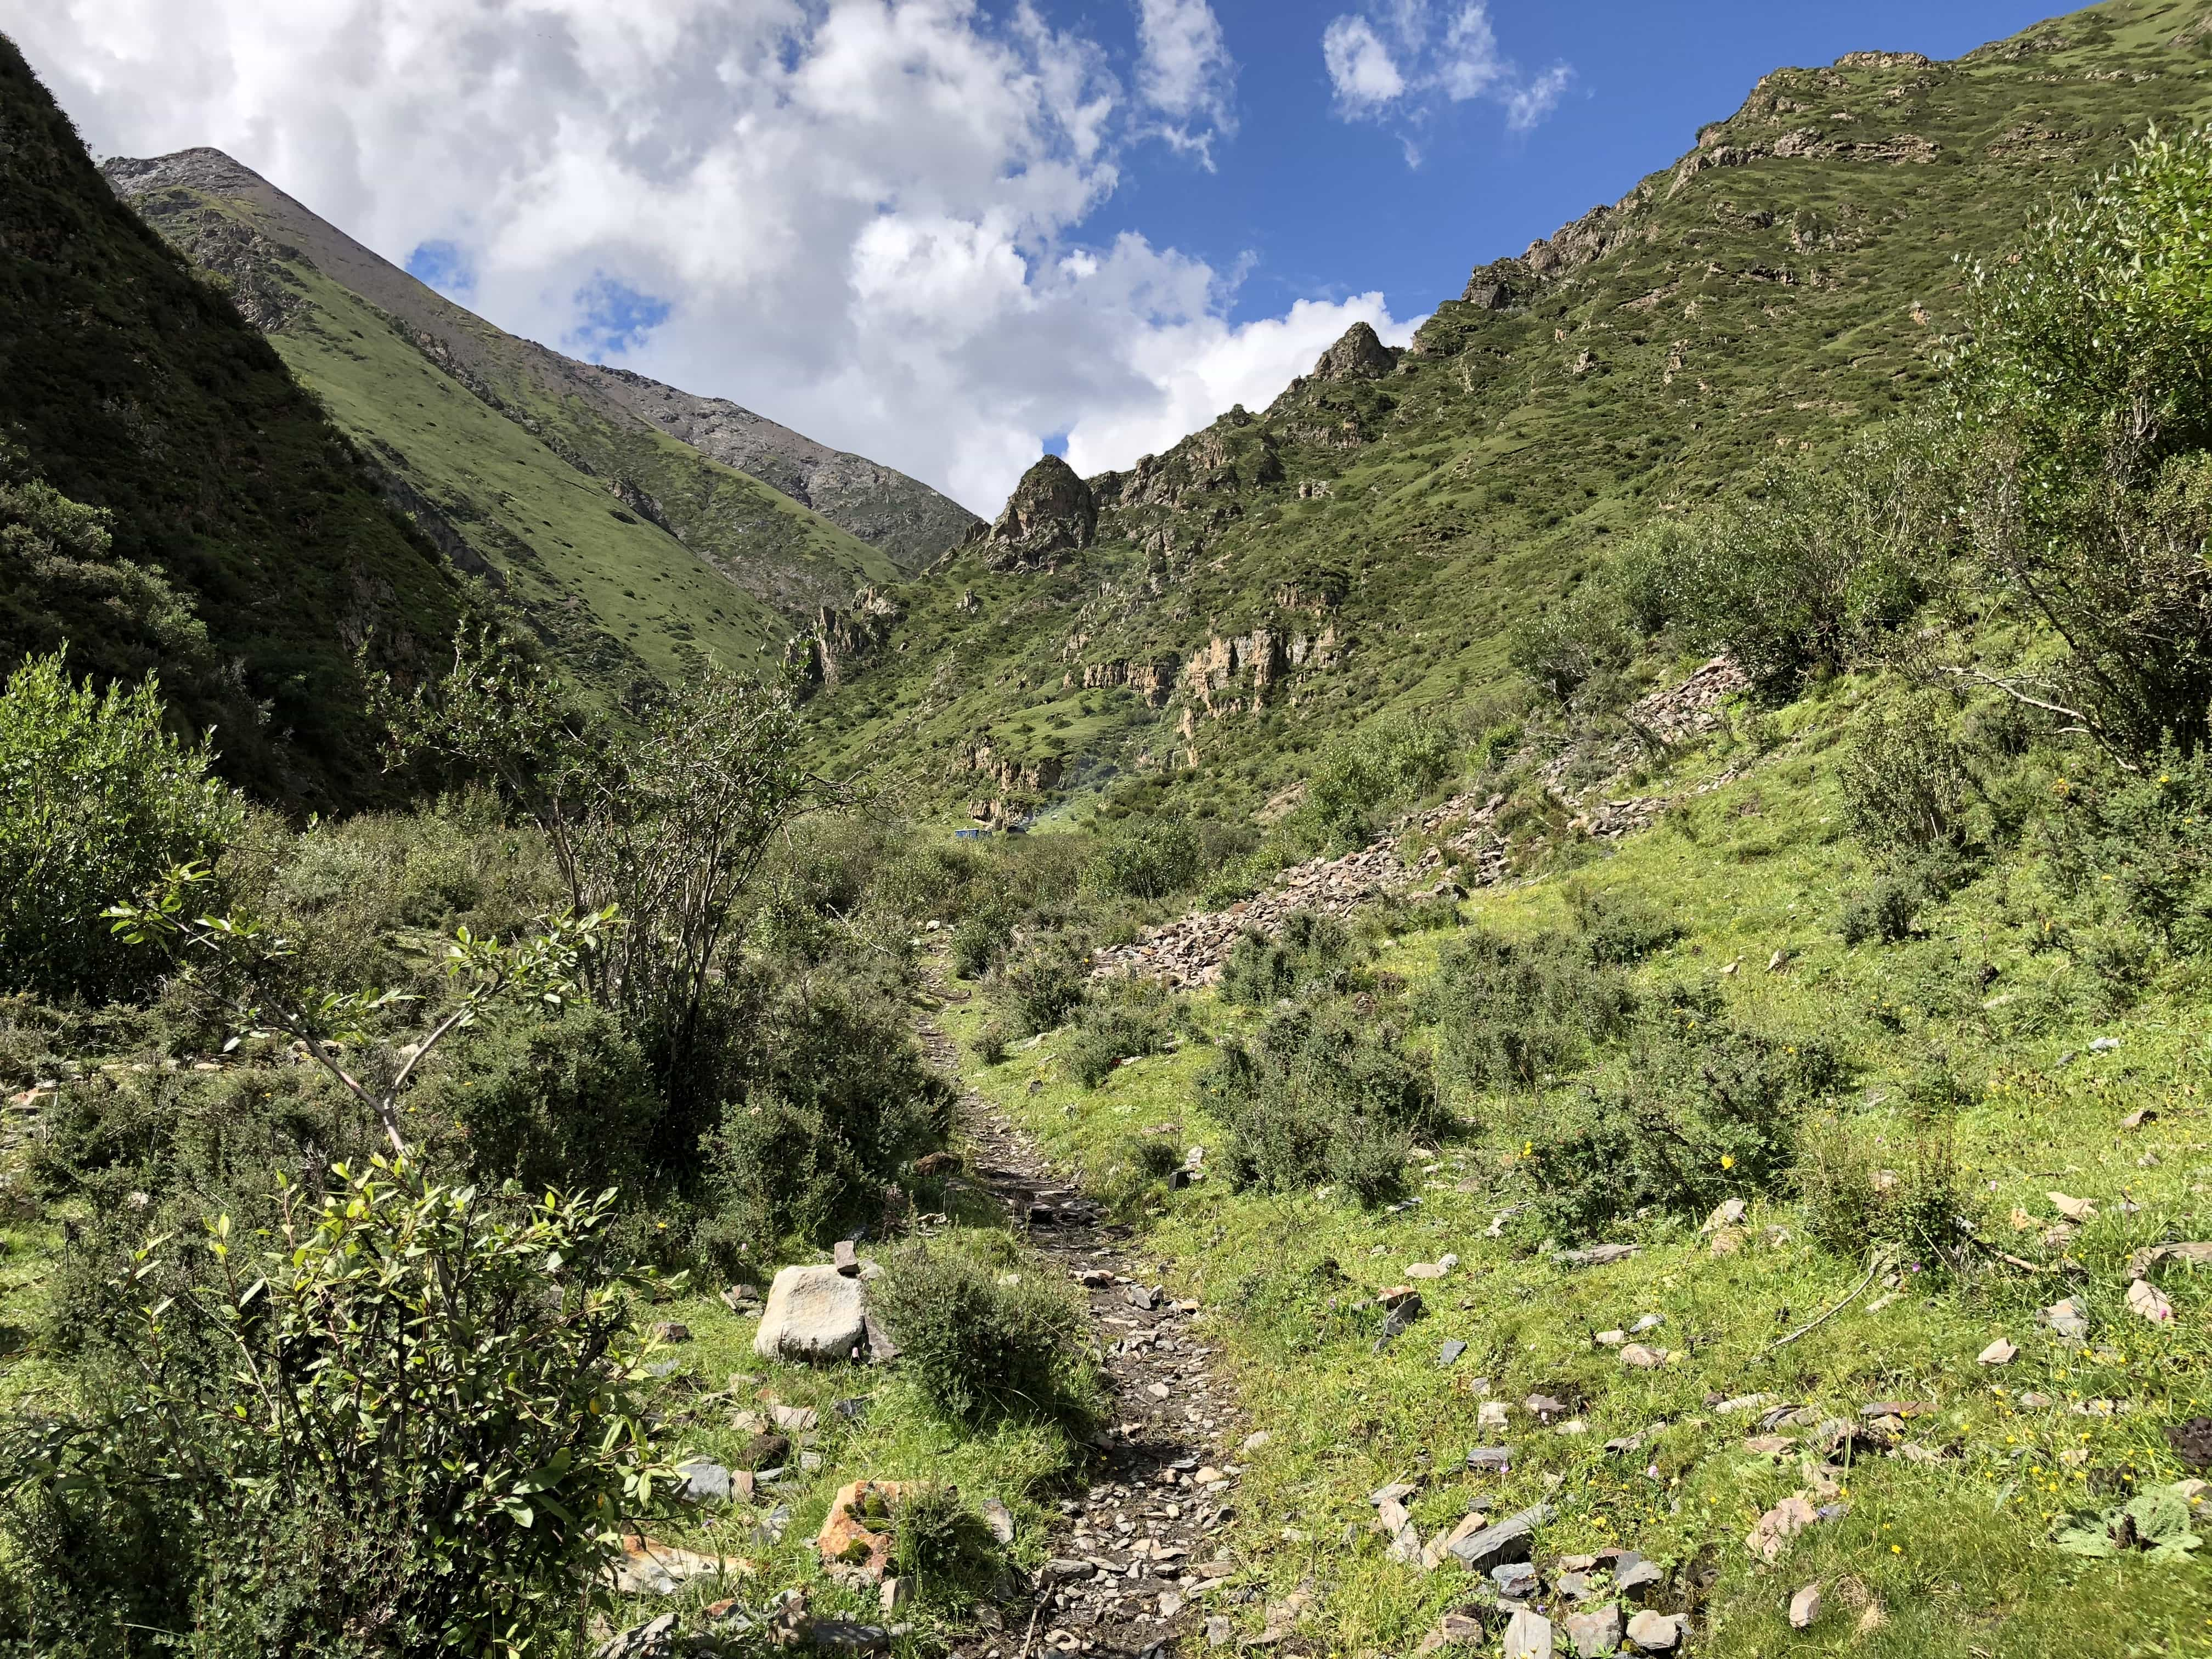 Path to herders campsite